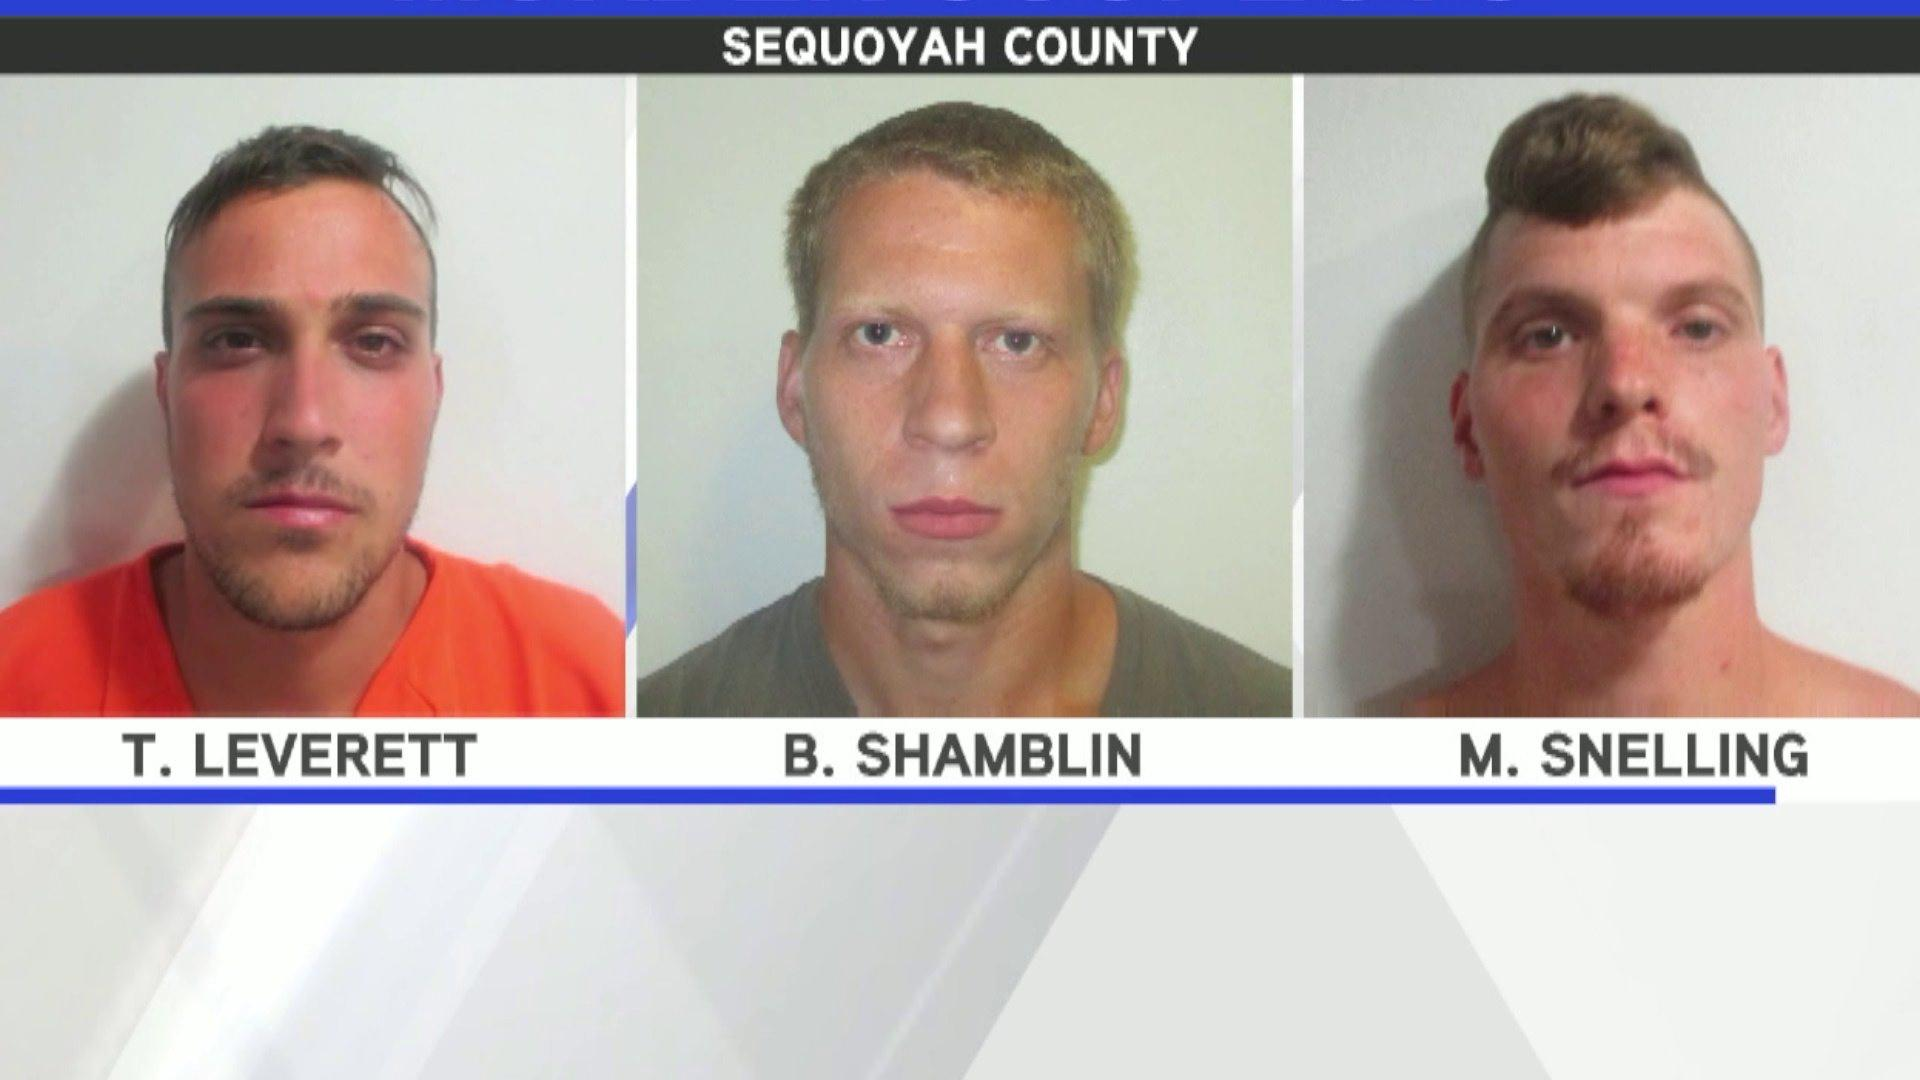 Three men charged with first-degree murder released from jail, charges dismissed